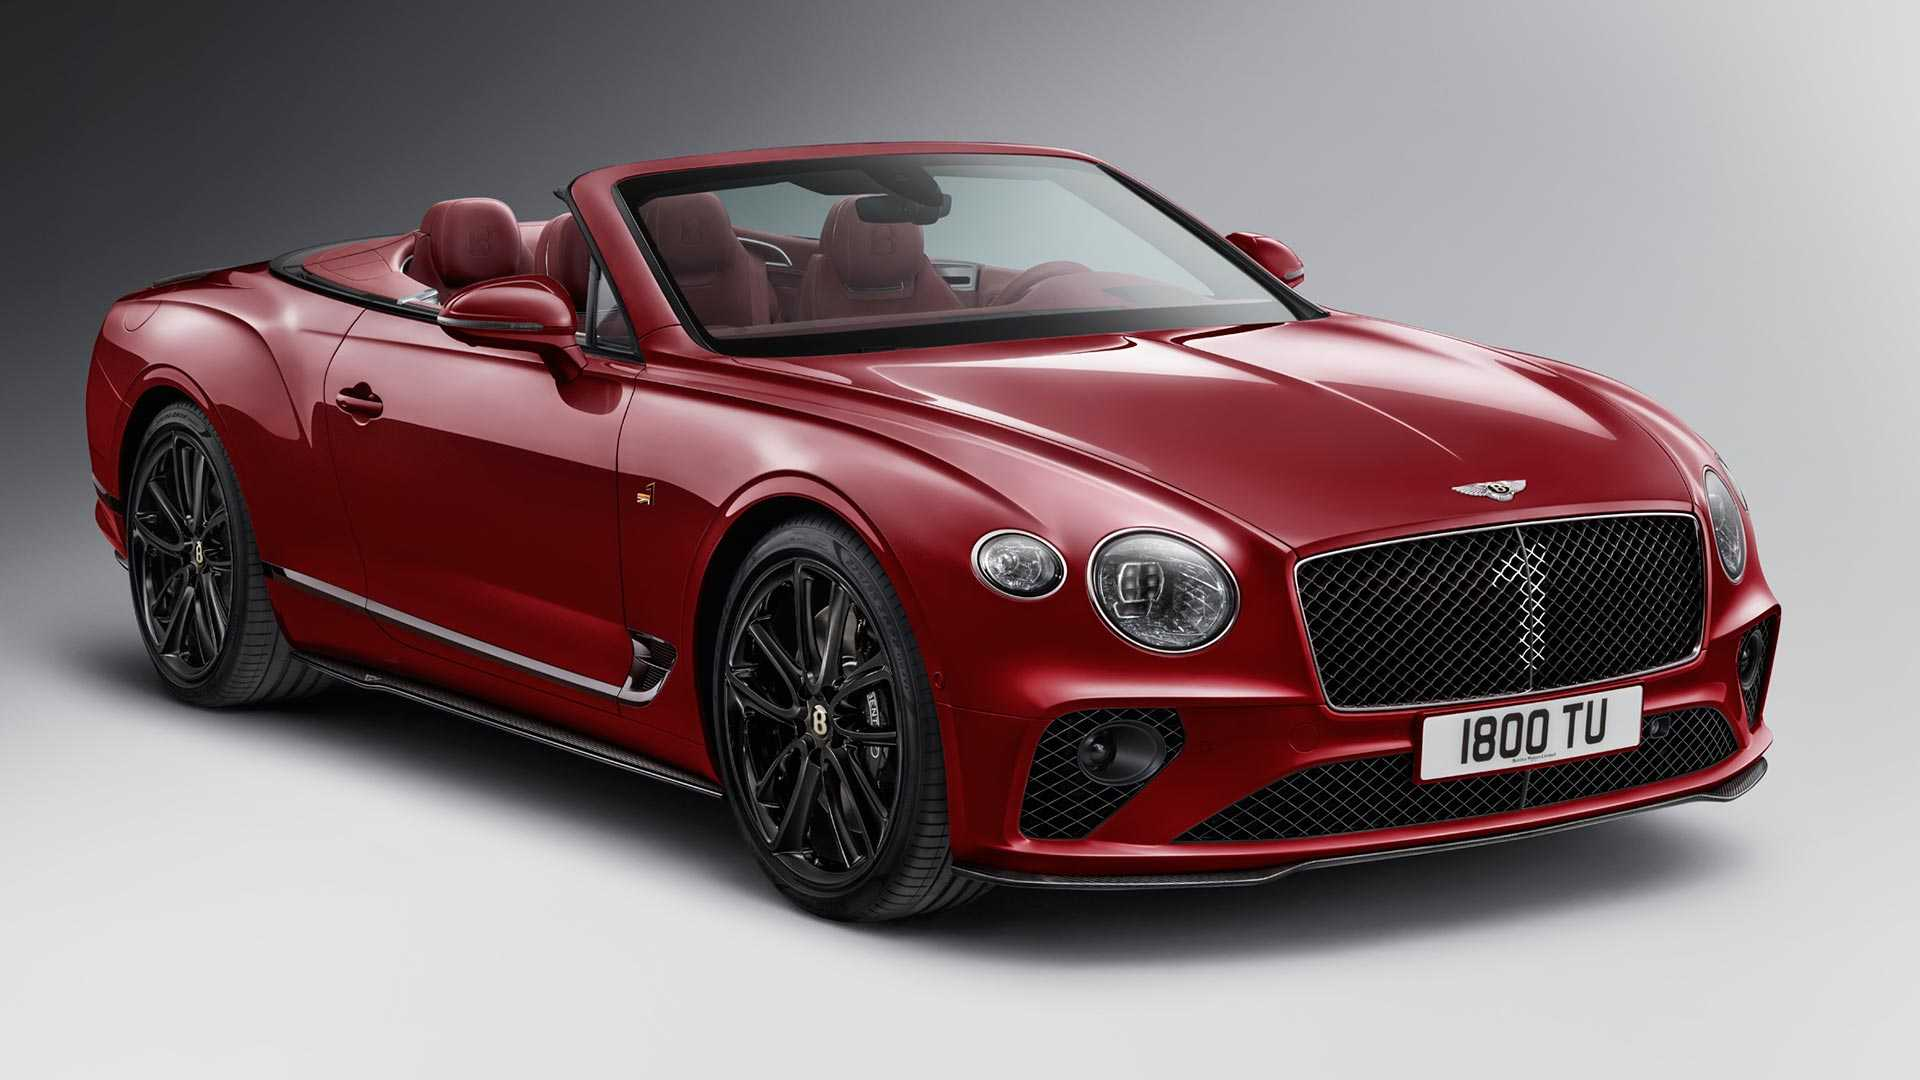 2020 Bentley Continental GT Convertible Number 1 Edition by Mulliner Front Three-Quarter Wallpapers (2)